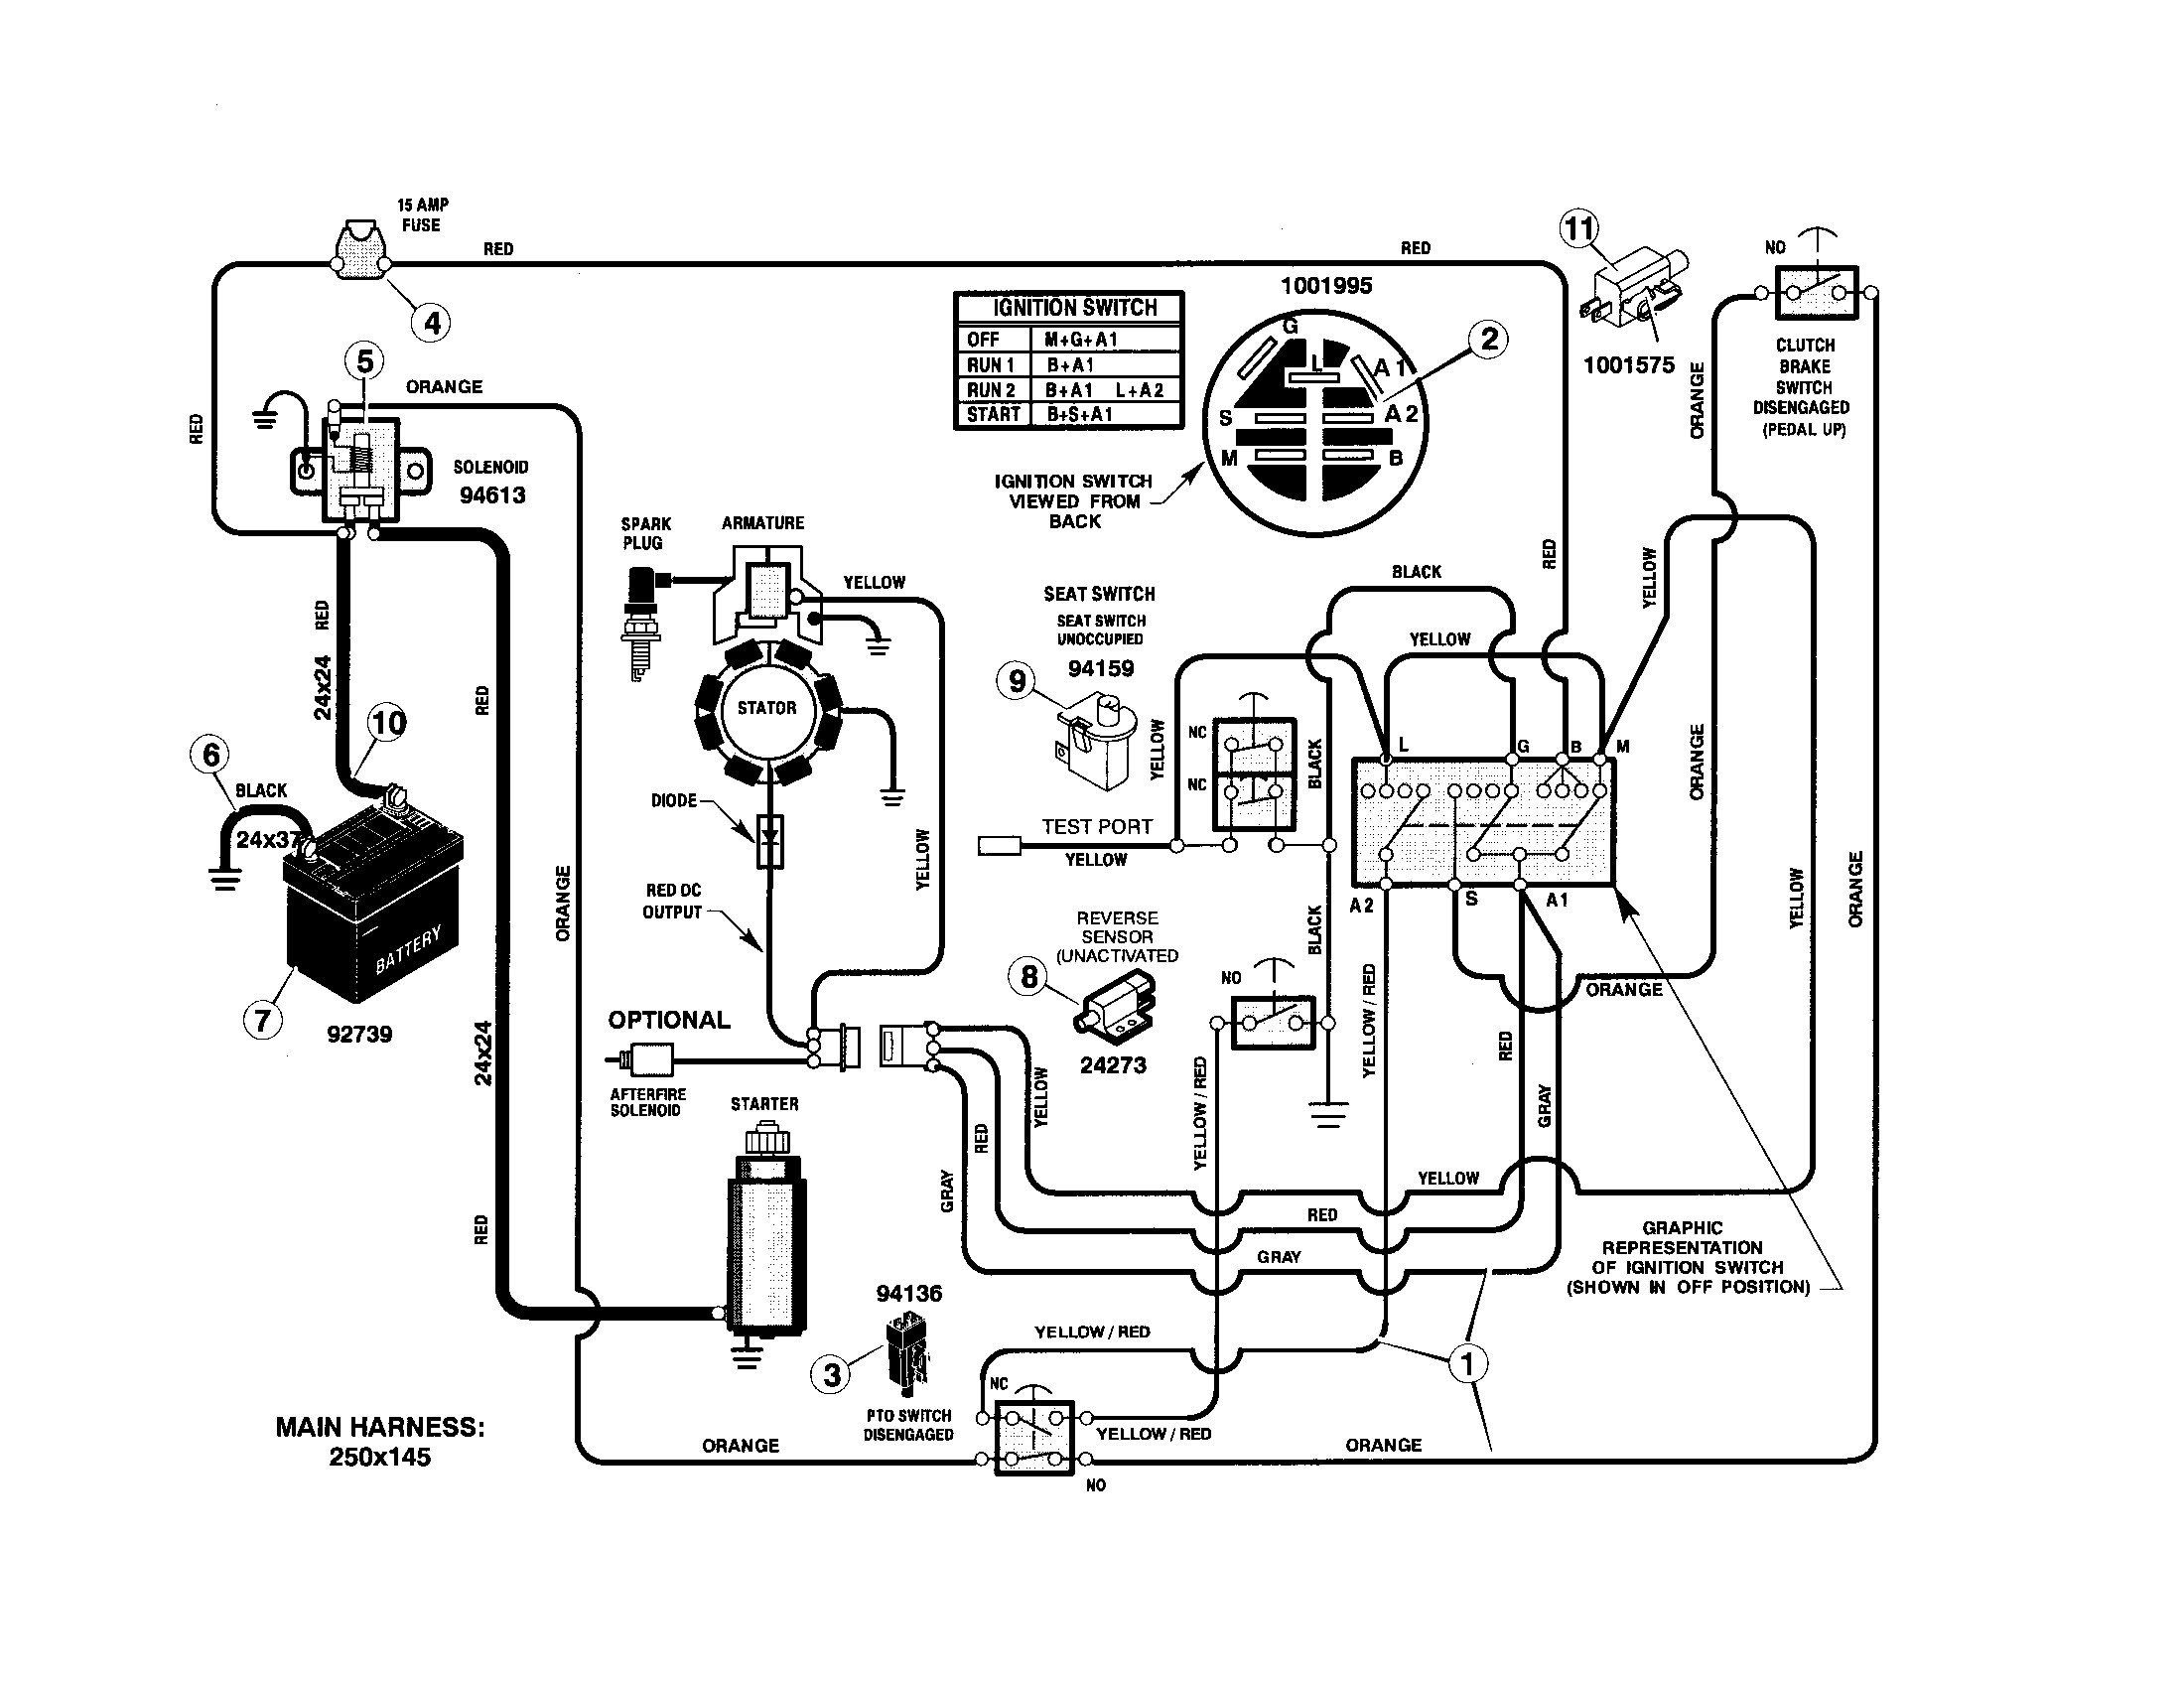 Huskee Lawn Mower Parts Diagram Huskee Riding Mower Wiring Diagram Wiring Diagram Directory